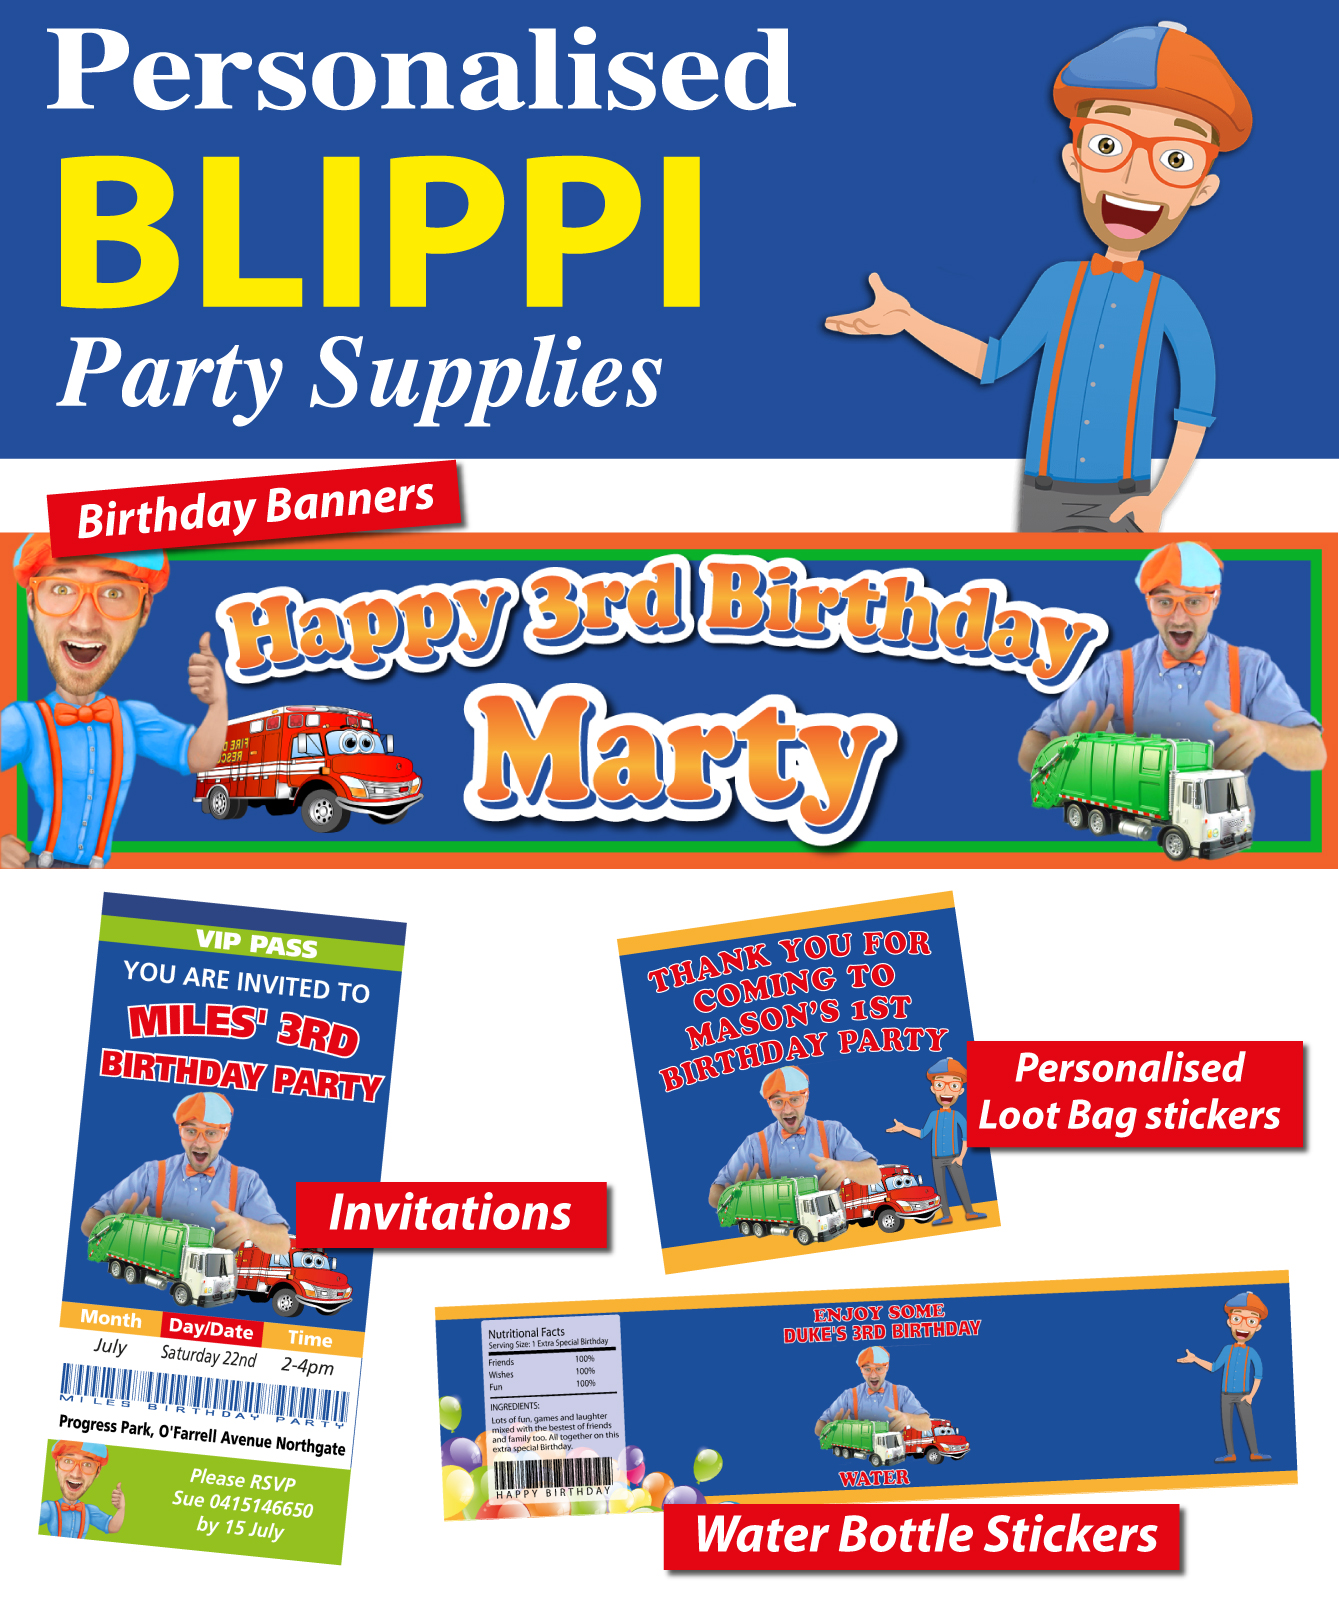 blippi-party-supplies-ebay.jpg